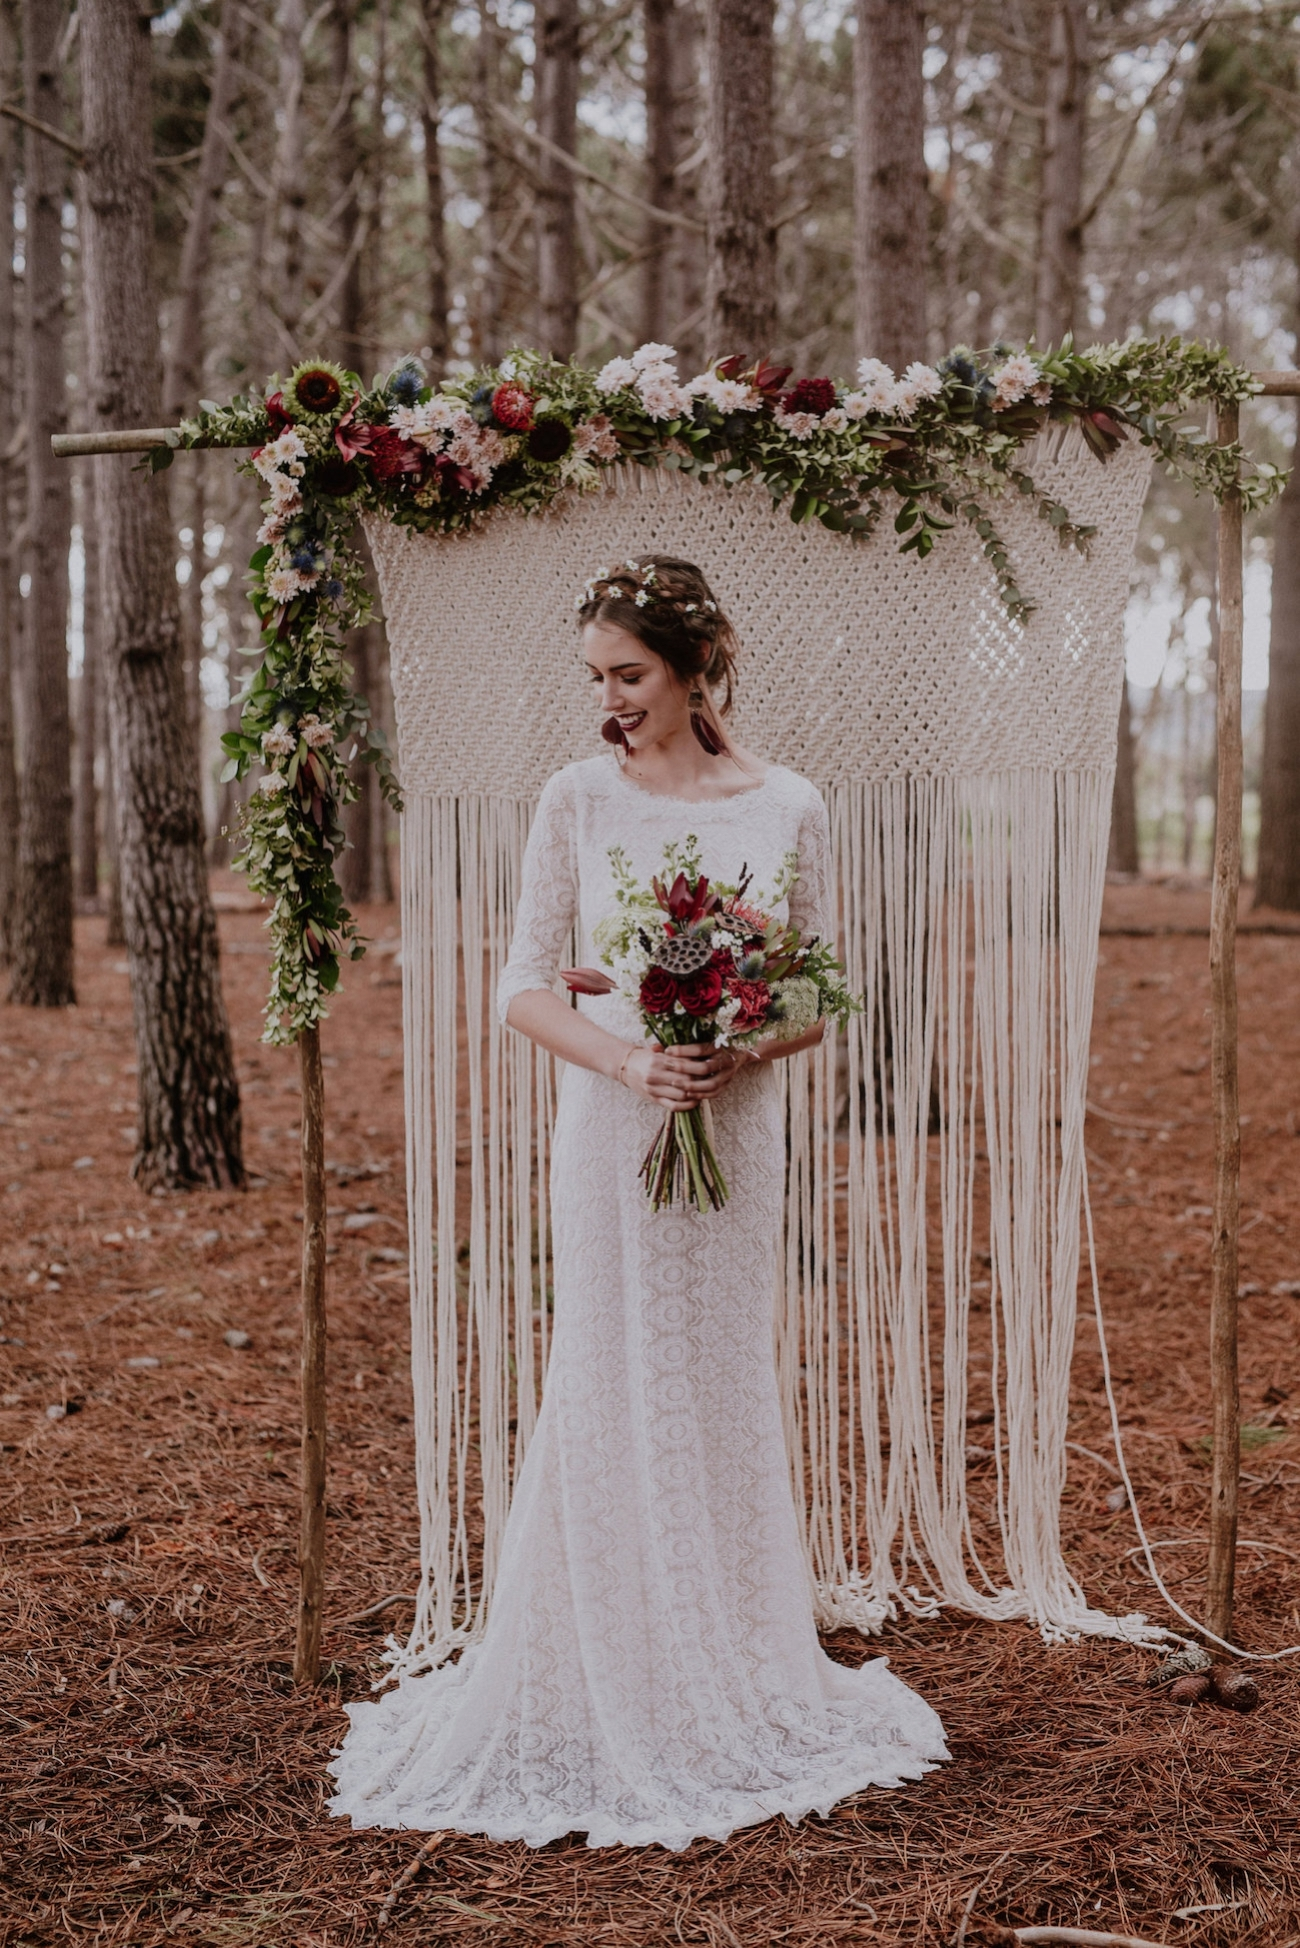 Boho Lace Wedding Dress | Credit: Lad & Lass Photography